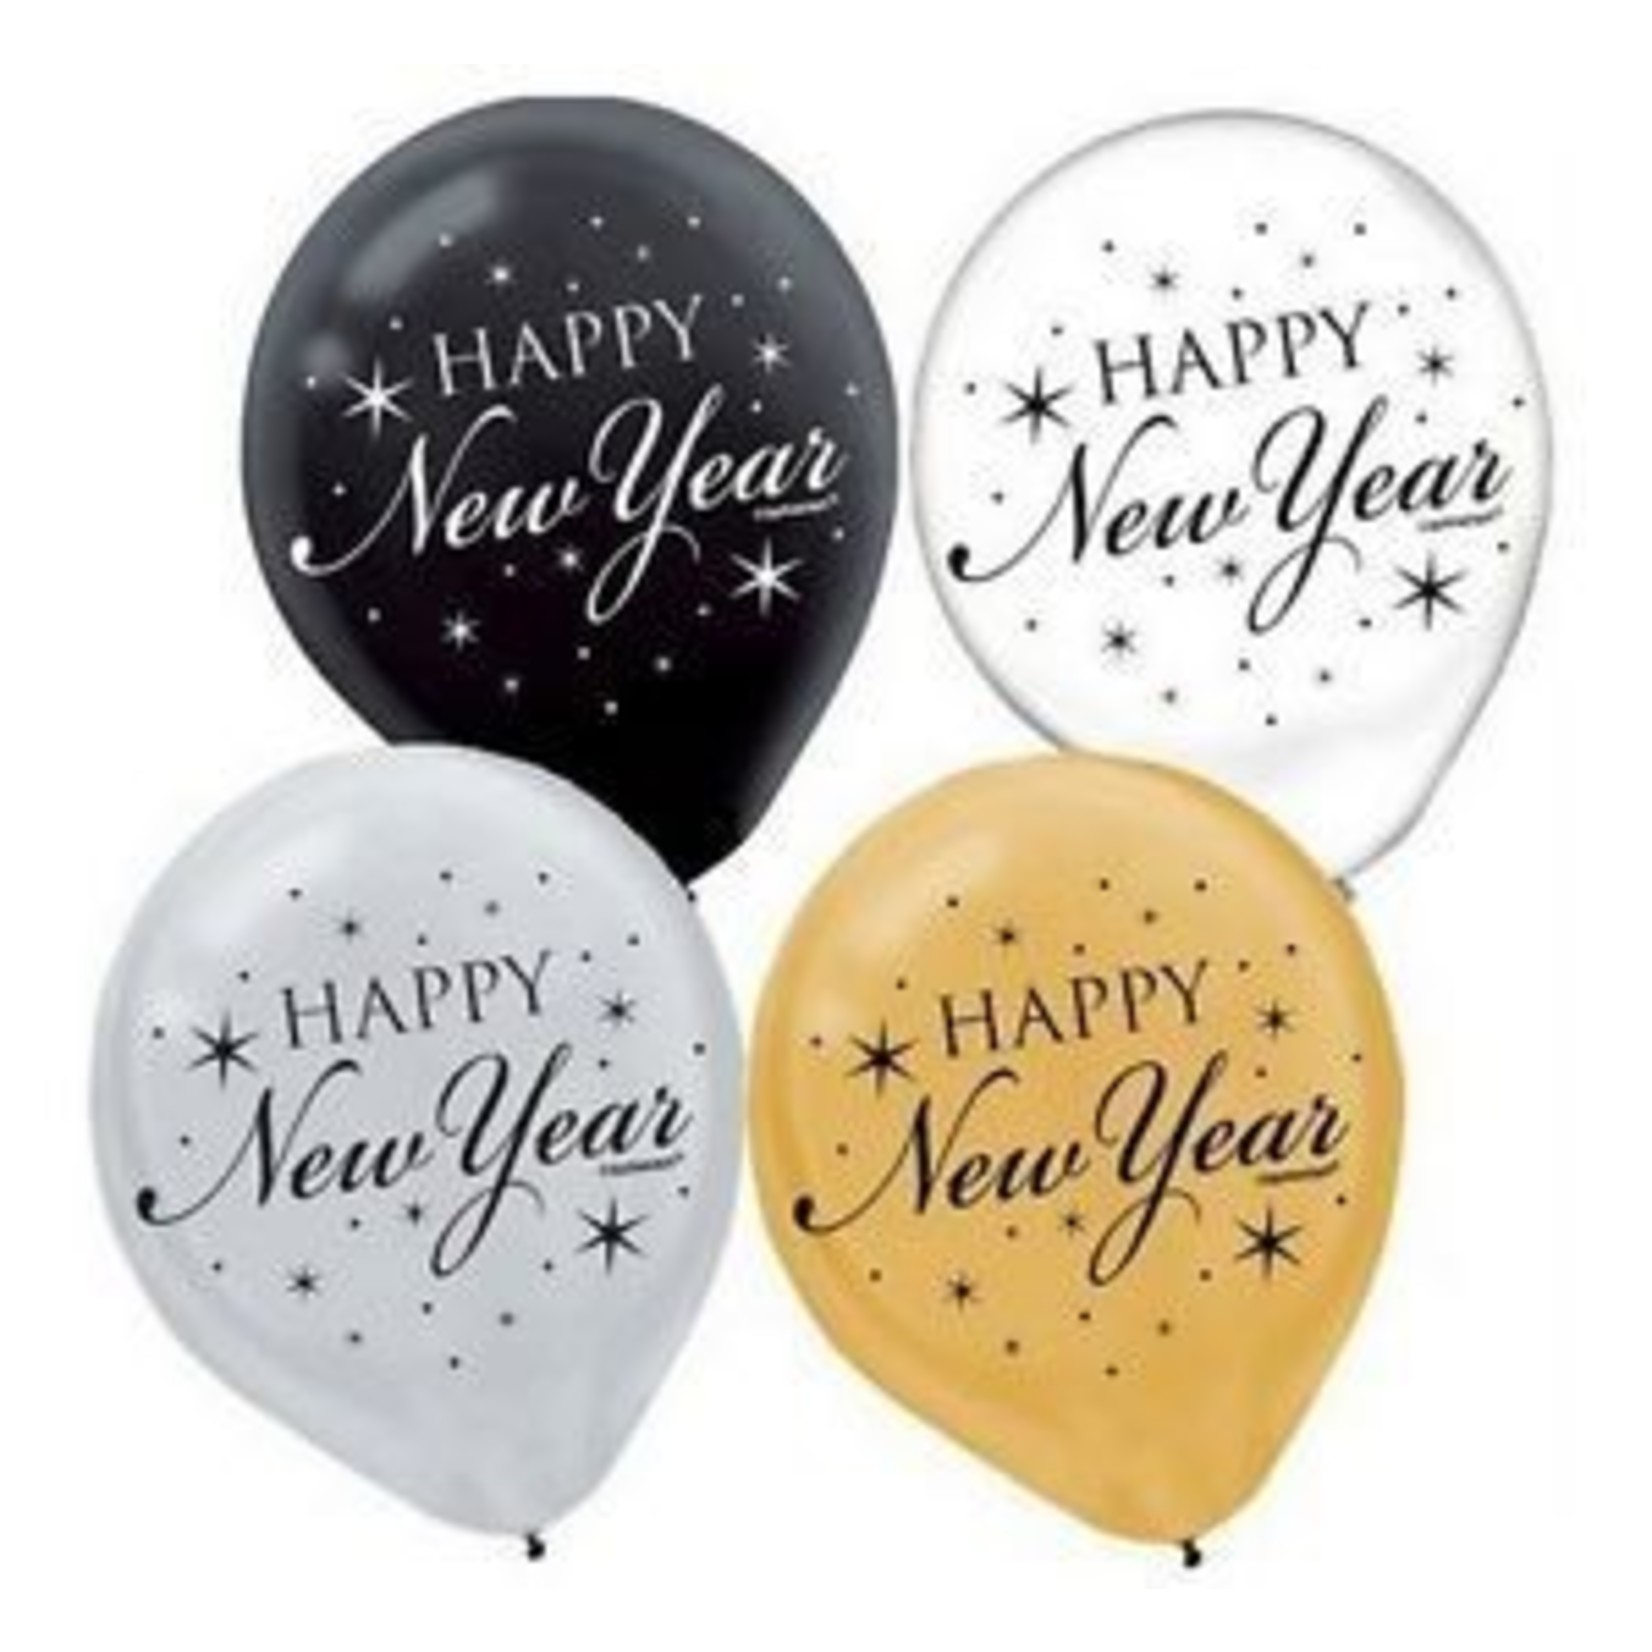 Balloon - Latex - New Year - gold/blk/clear - 15pkg